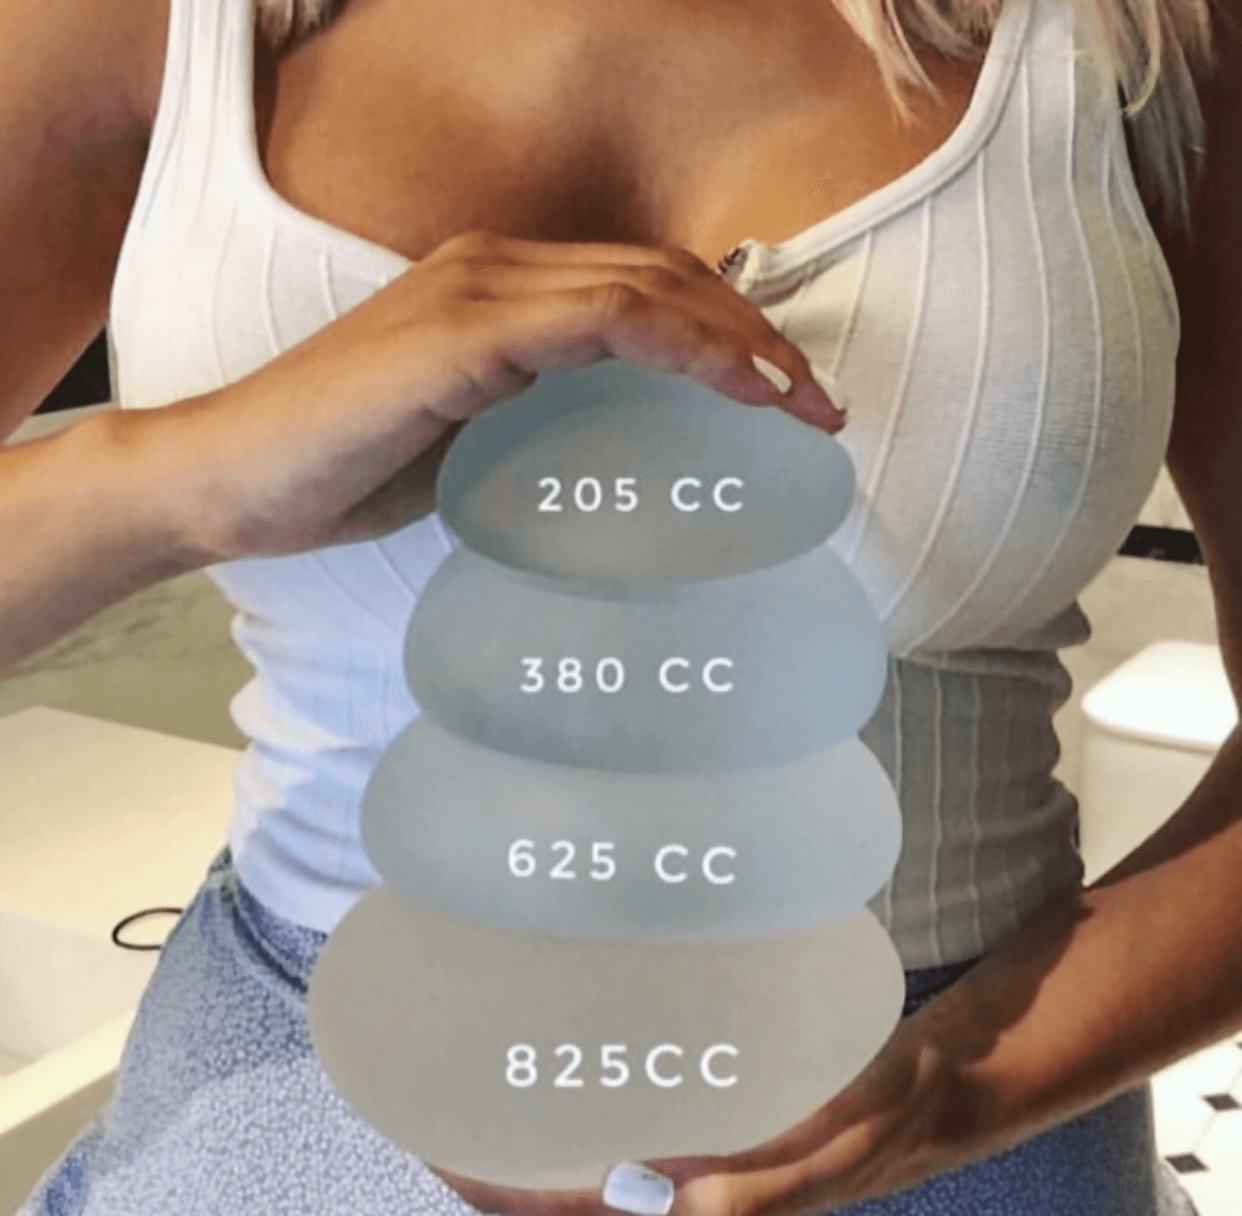 What is the right size implant for me?